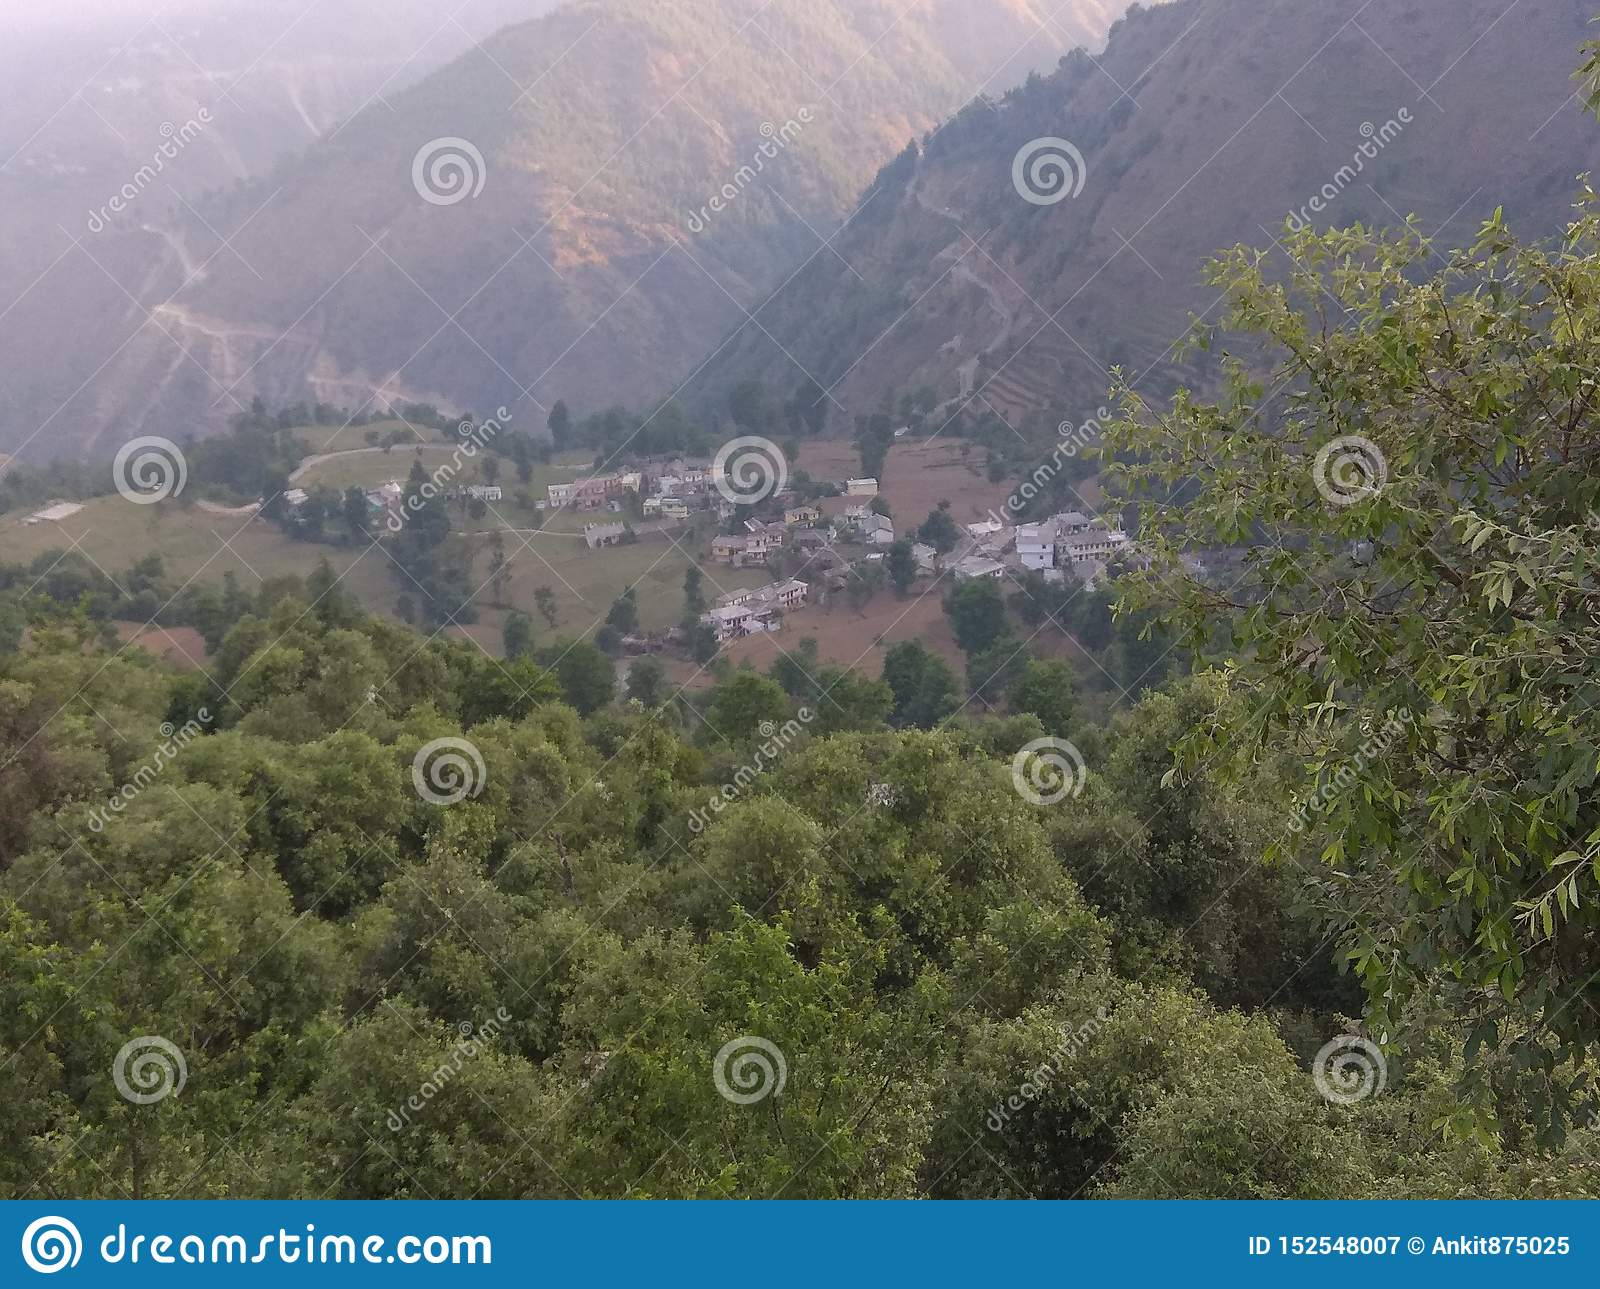 Green forest and hills with green nature with small village in mountain area